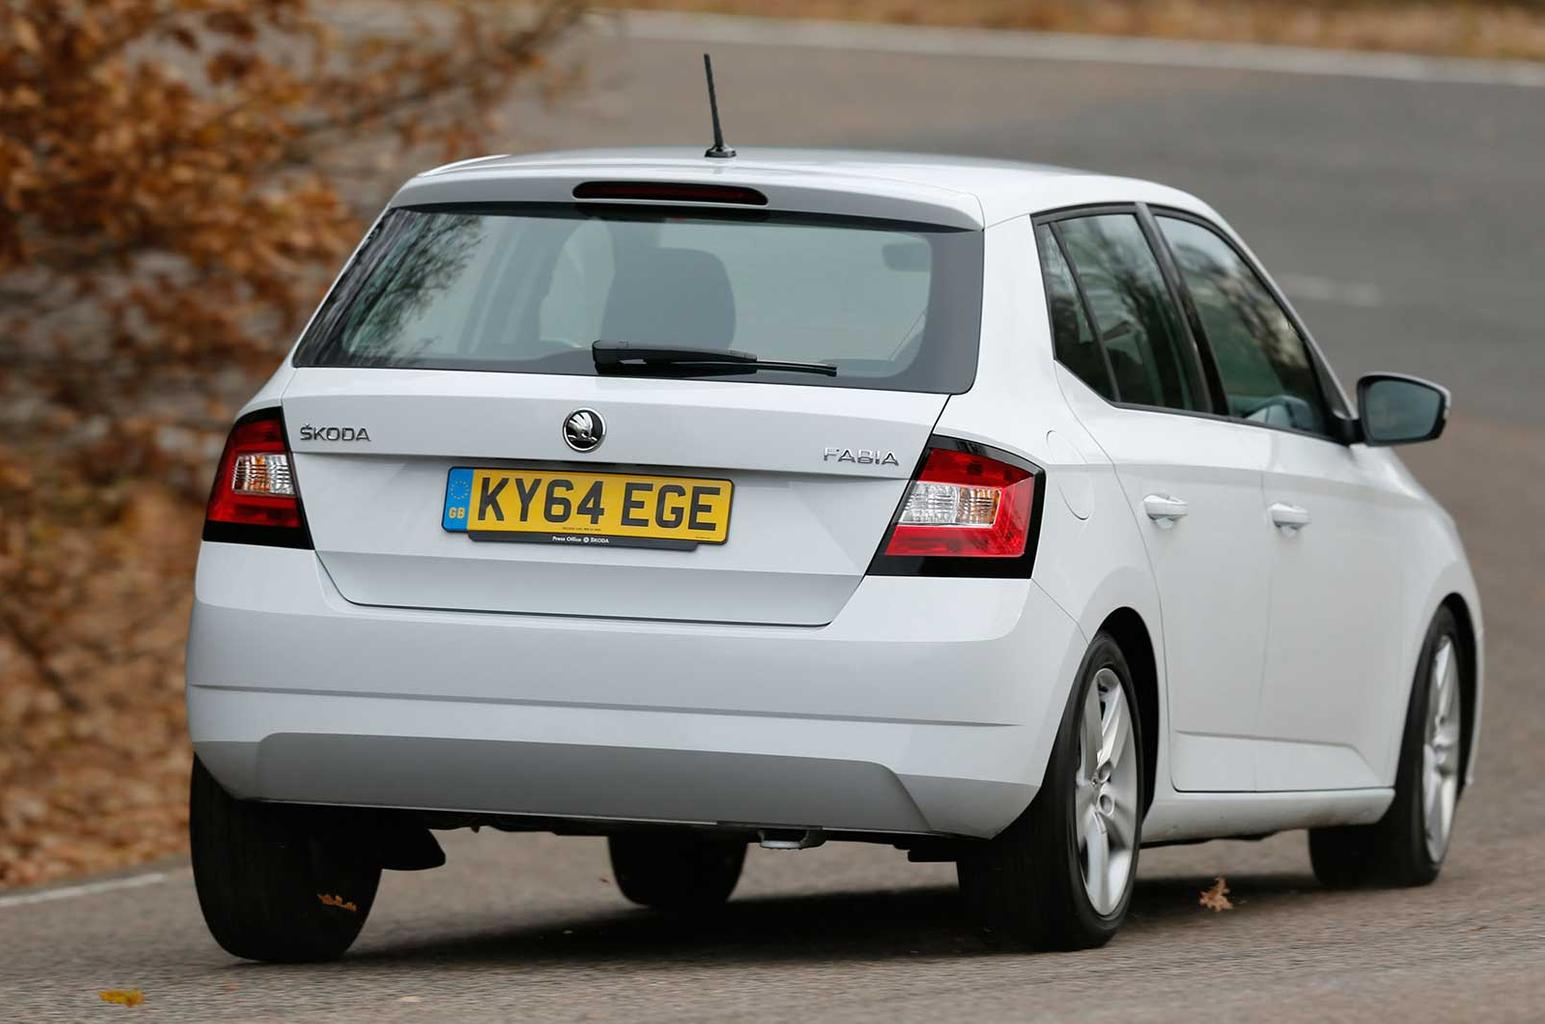 New car deal of the day: Skoda Fabia